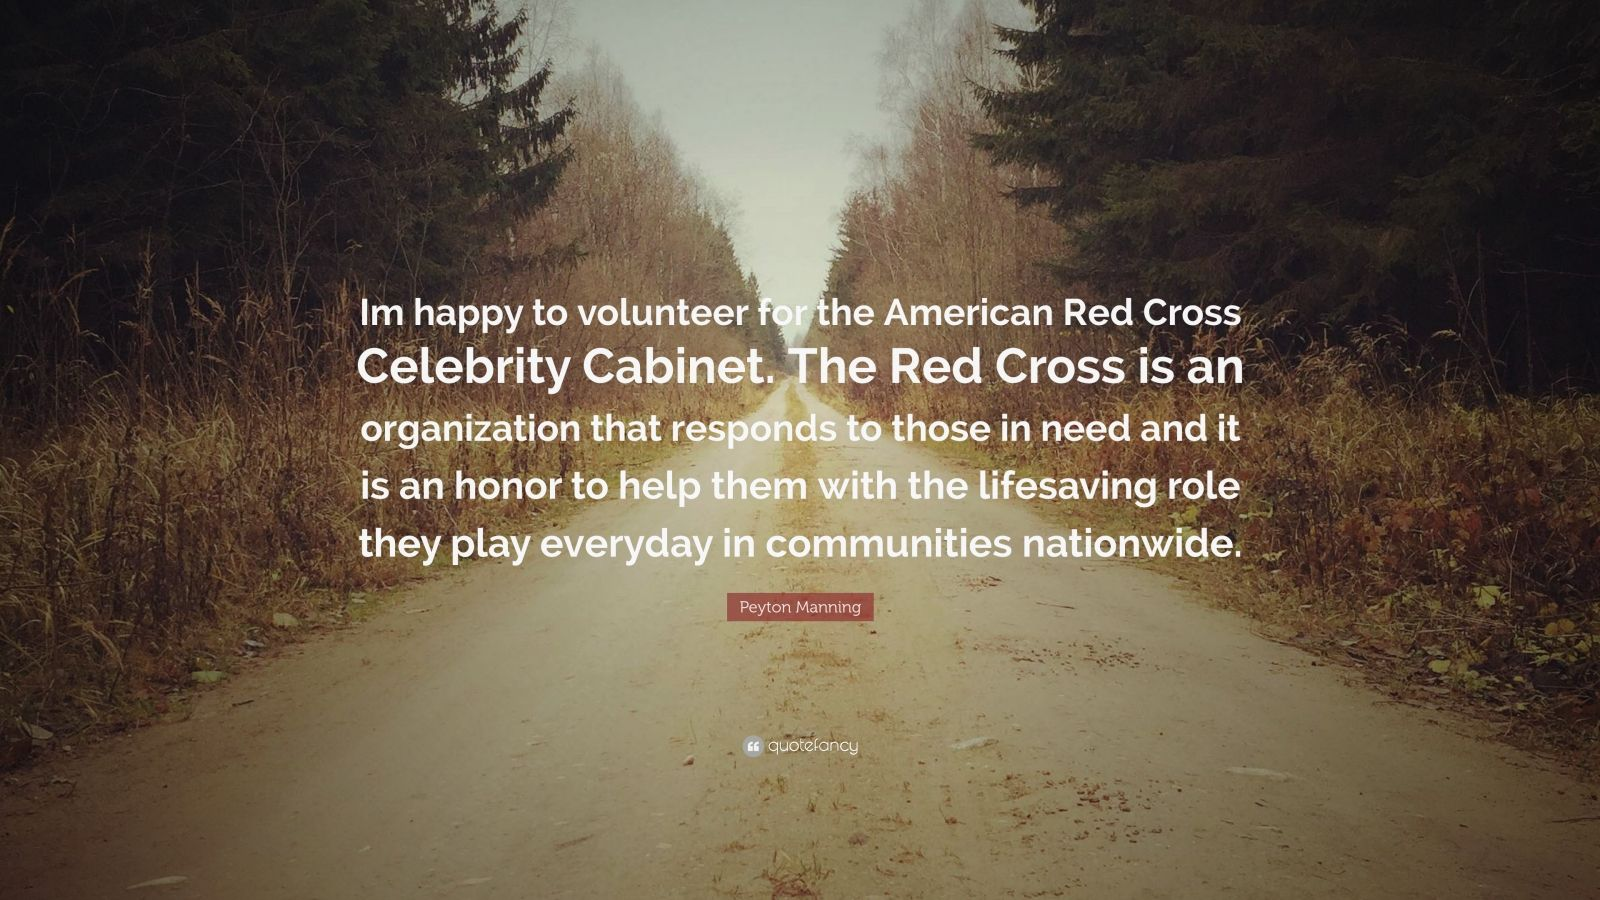 """Peyton Manning Quote: """"Im happy to volunteer for the American Red Cross Celebrity Cabinet. The Red Cross is an organization that responds to those in need and it is an honor to help them with the lifesaving role they play everyday in communities nationwide."""""""